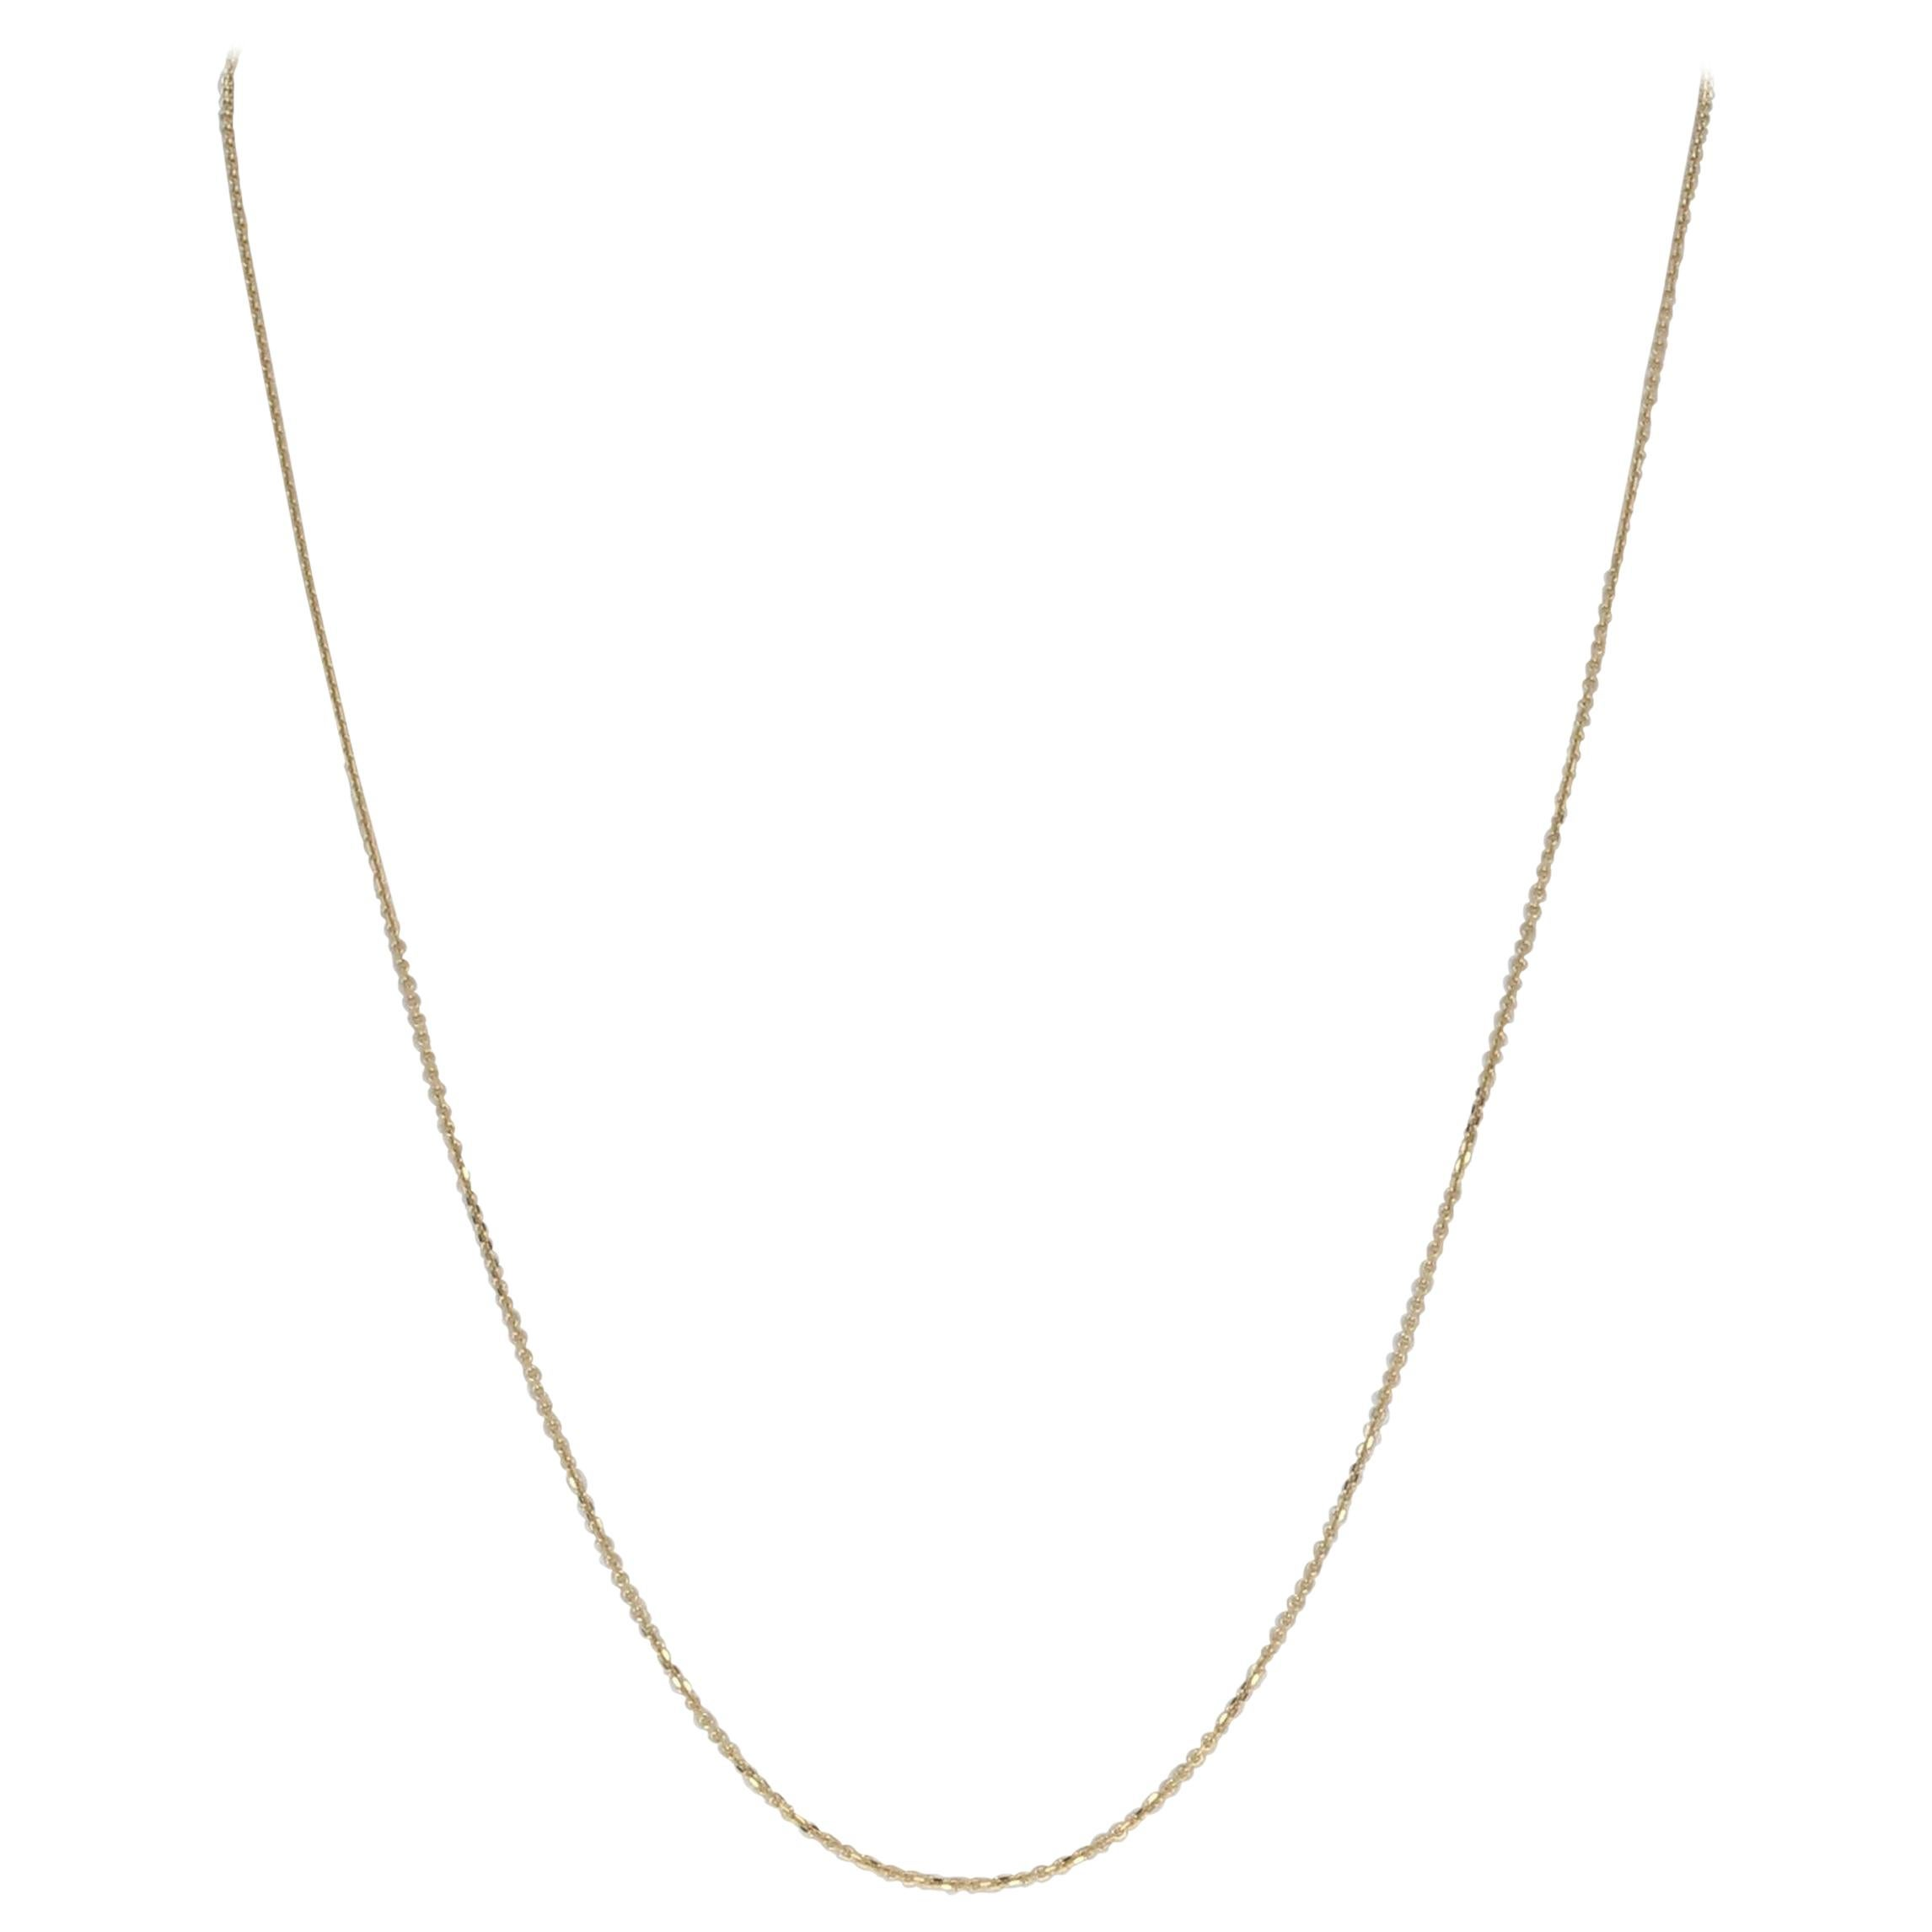 Yellow Gold Diamond Cut Cable Chain Necklace, 14 Karat Lobster Claw Clasp